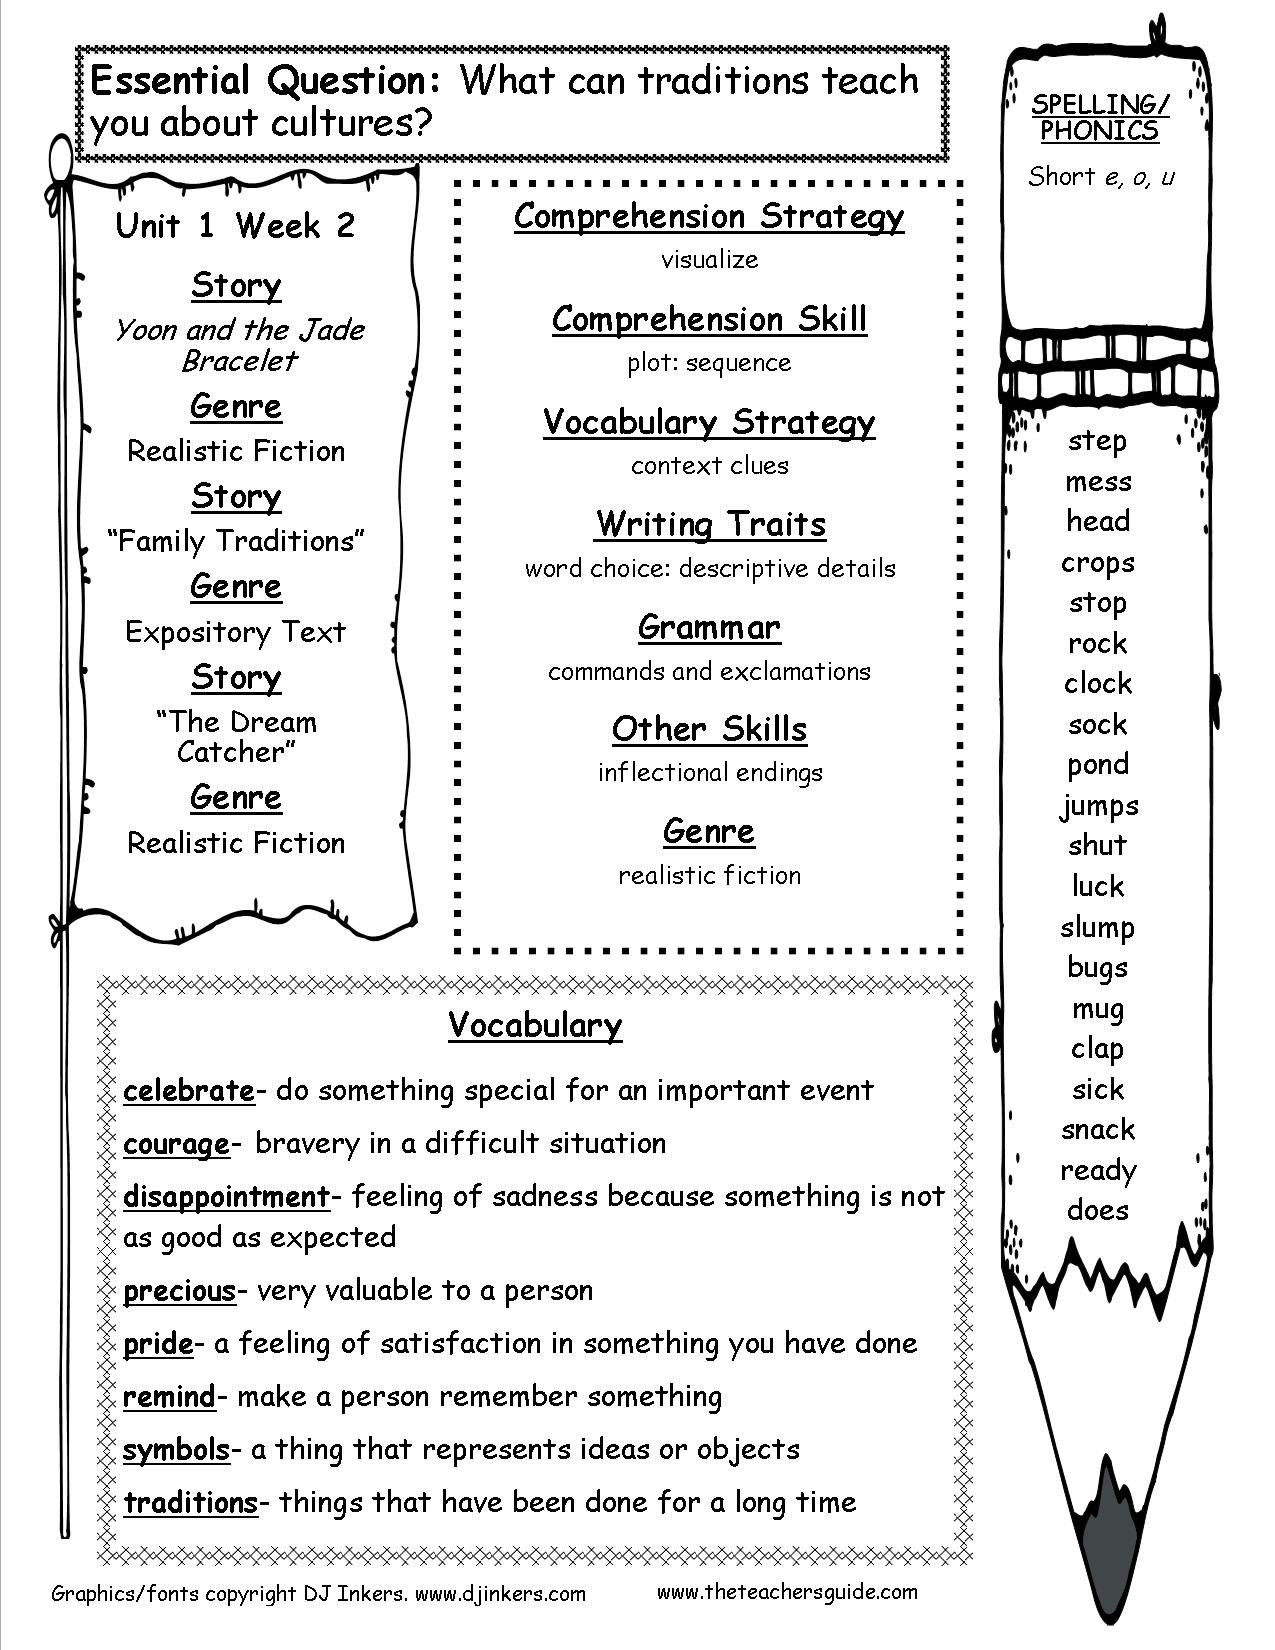 Inflectional Endings Worksheets 2nd Grade Mcgraw Wonders Third Grade Resources and Printouts 3rd